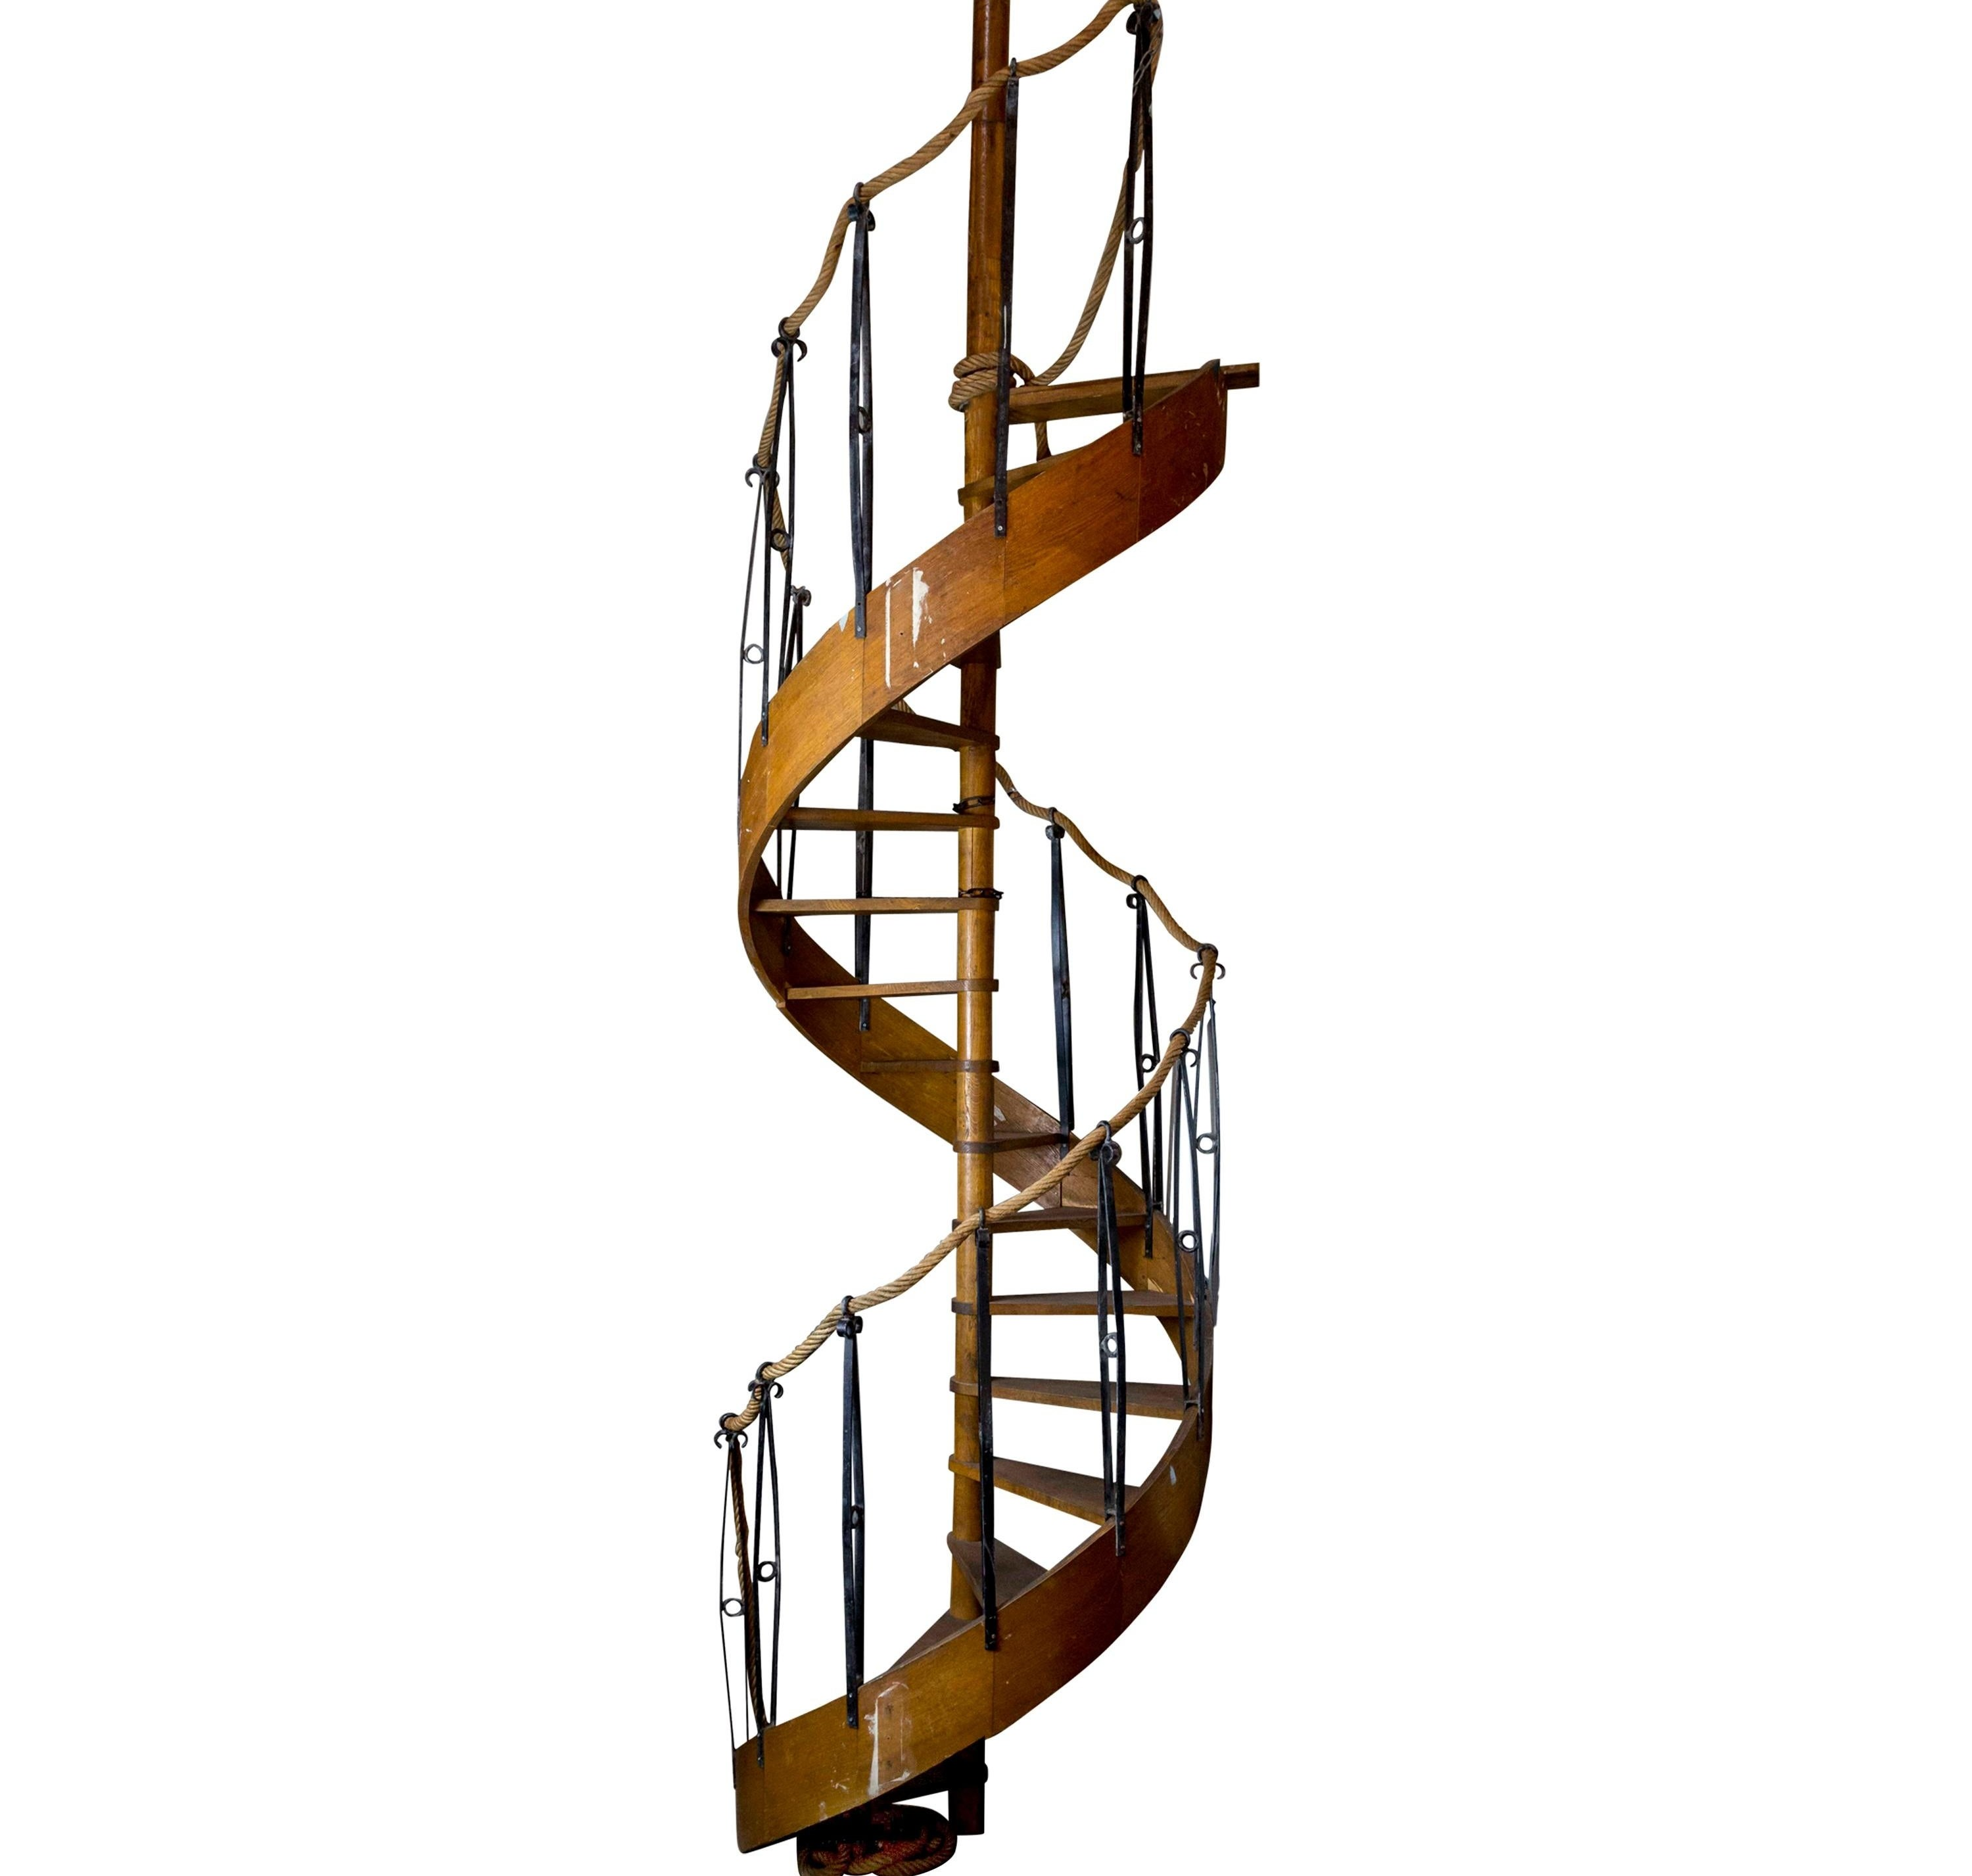 1930S Wood Spiral Staircase With Wrought Iron Balusters And Rope | Antique Spiral Staircase For Sale | French | Wooden | Old Fashioned | Wood Antique | Cast Iron